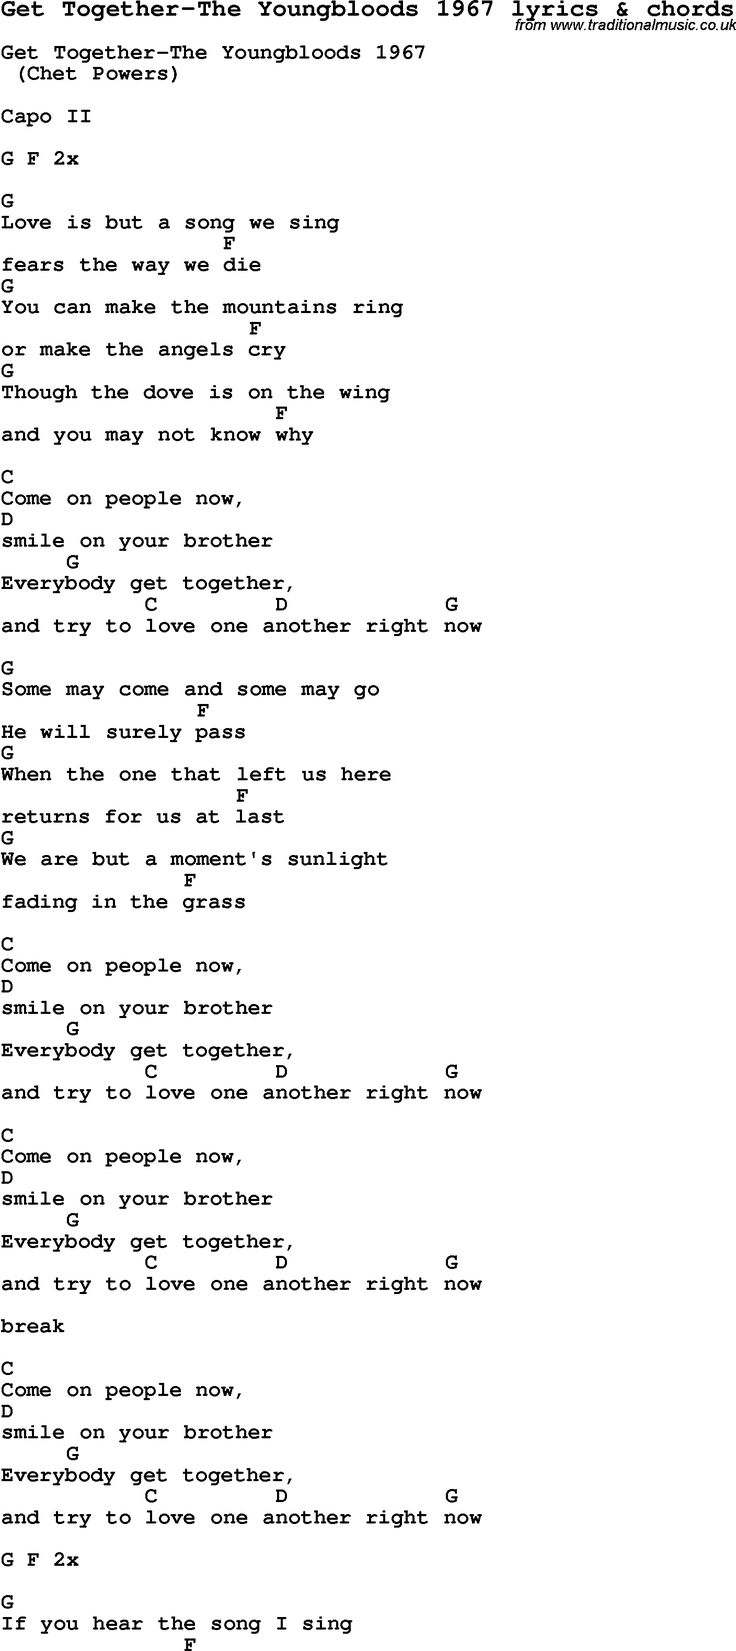 136 best can you hear the music images on pinterest music cool love song lyrics for get together the youngbloods 1967 with chords for ukulele hexwebz Gallery